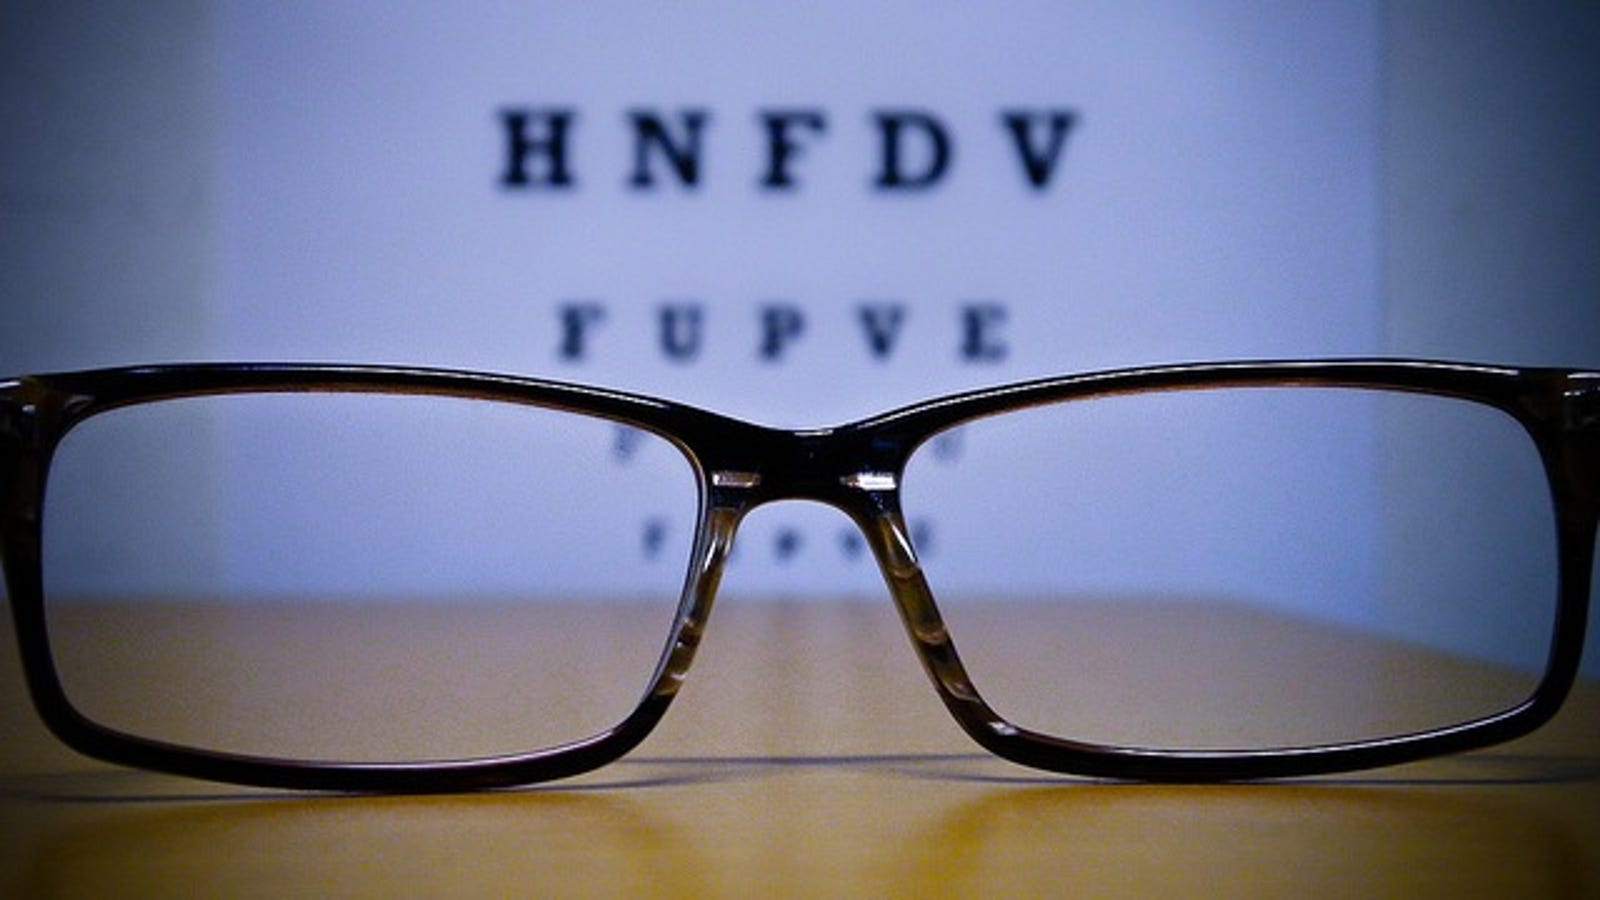 87e14720311 The Correct Way to Clean Eyeglasses